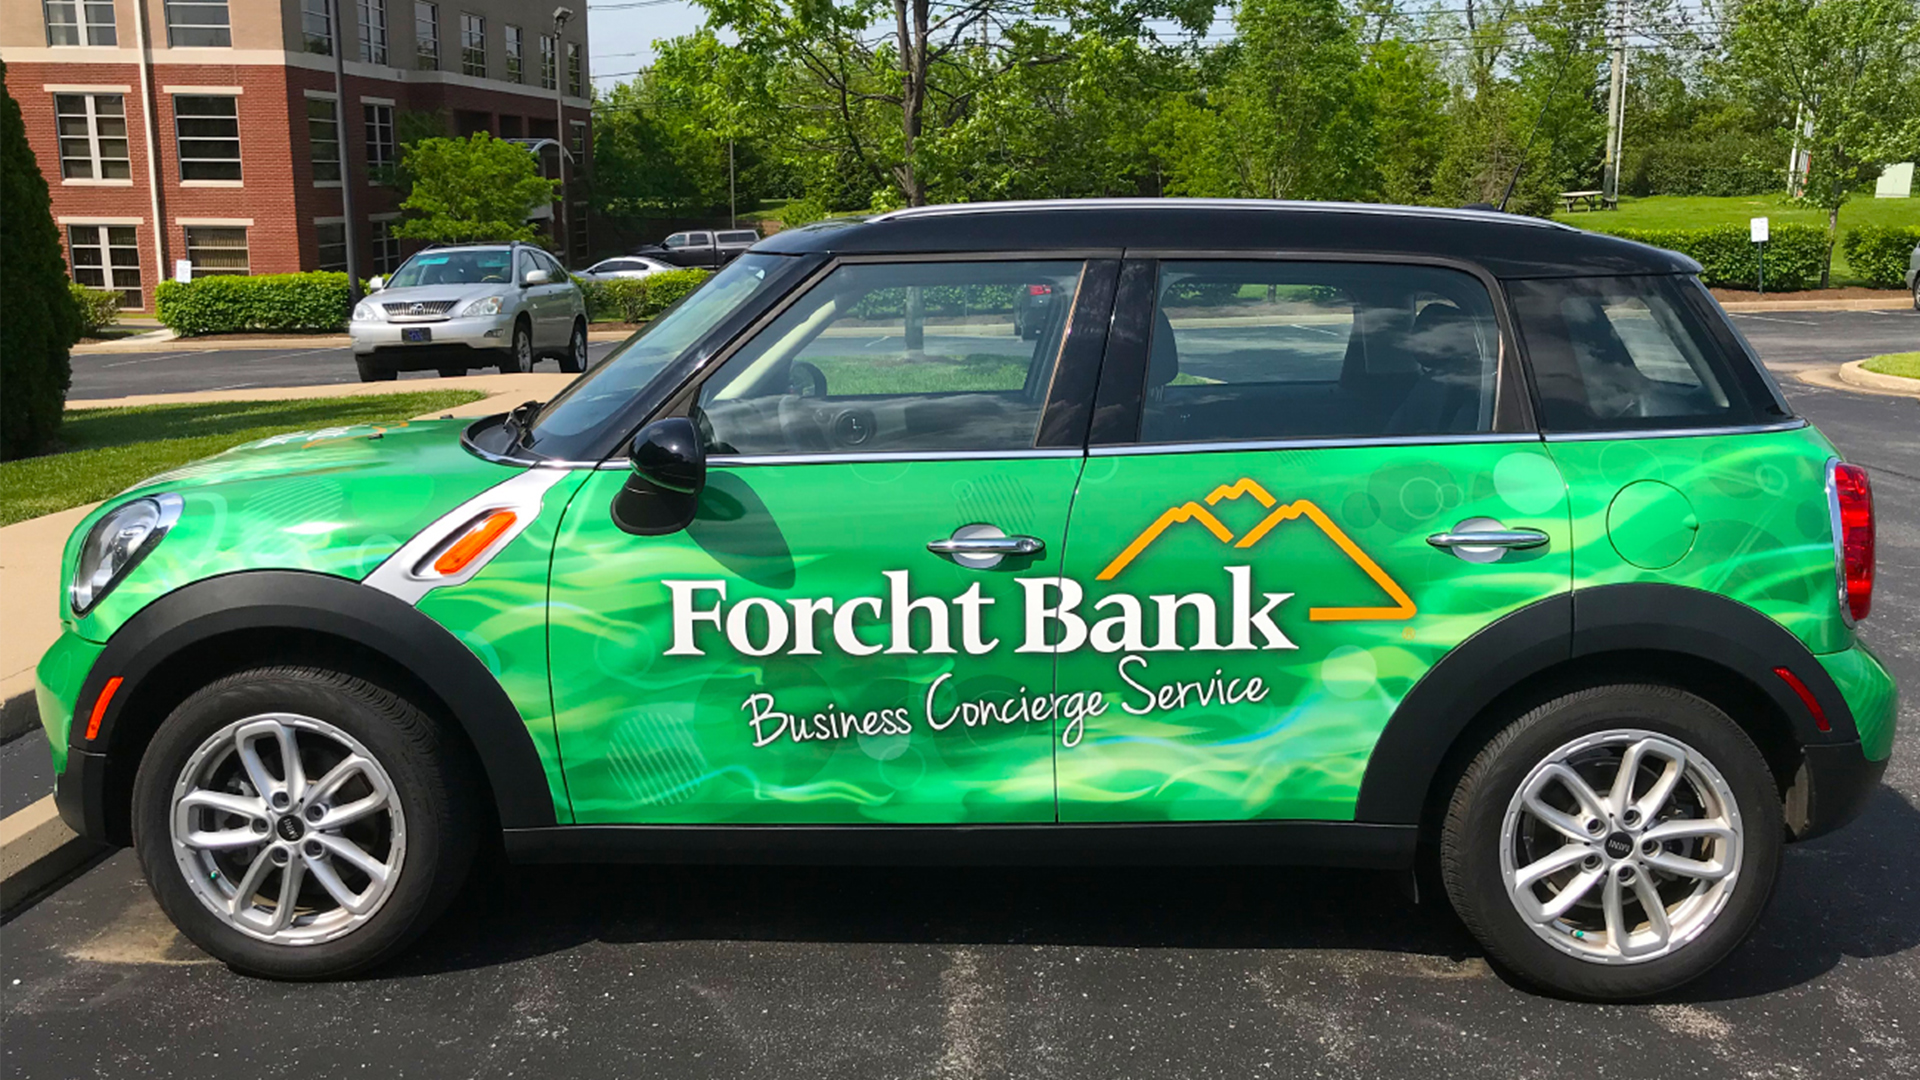 Forcht Bank vehicle wrap